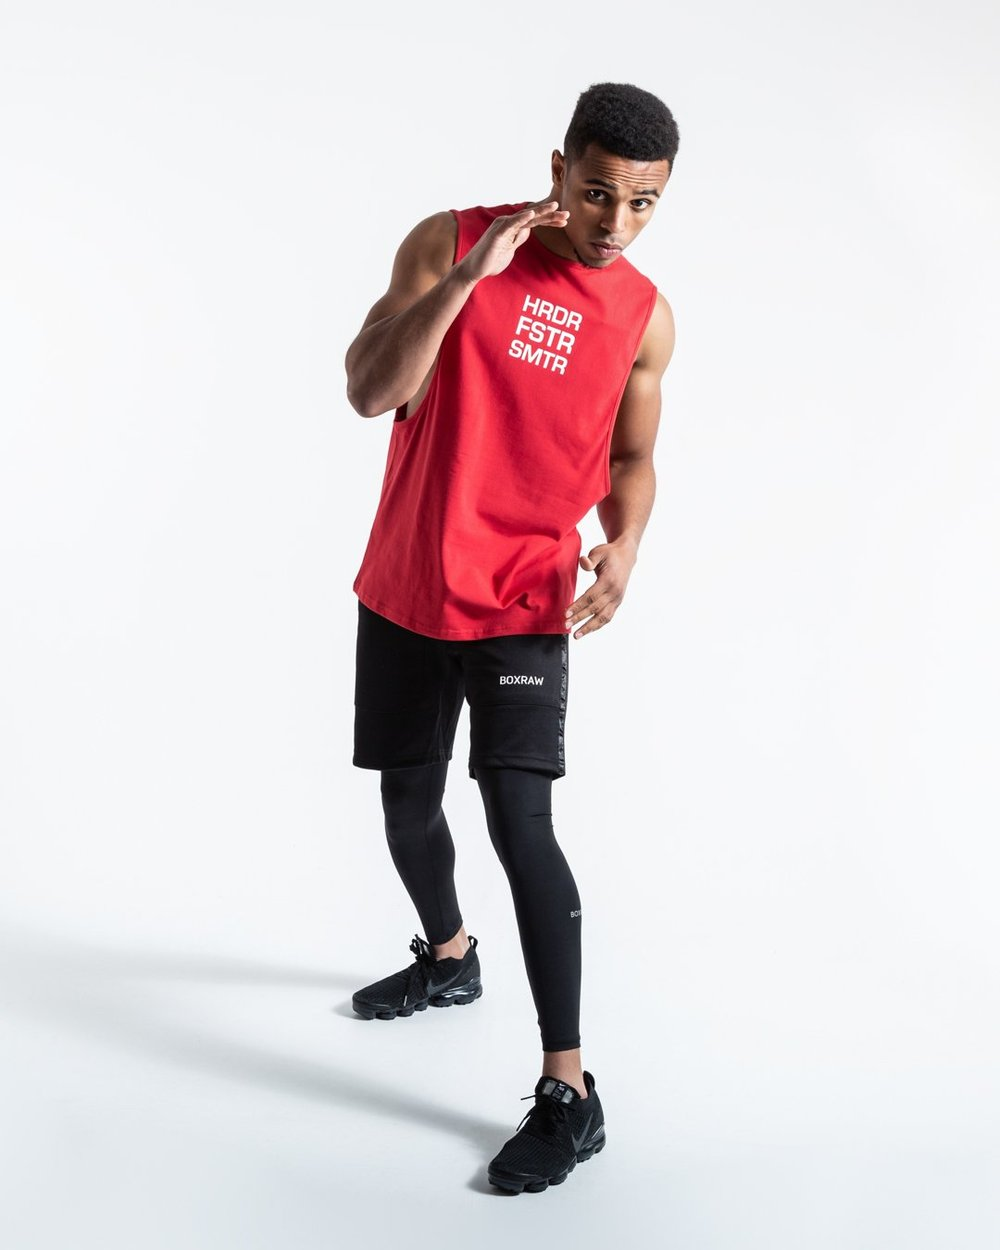 HRDR FSTR SMTR MUSCLE TANK - RED - Pandemic Fight Gear Inc.